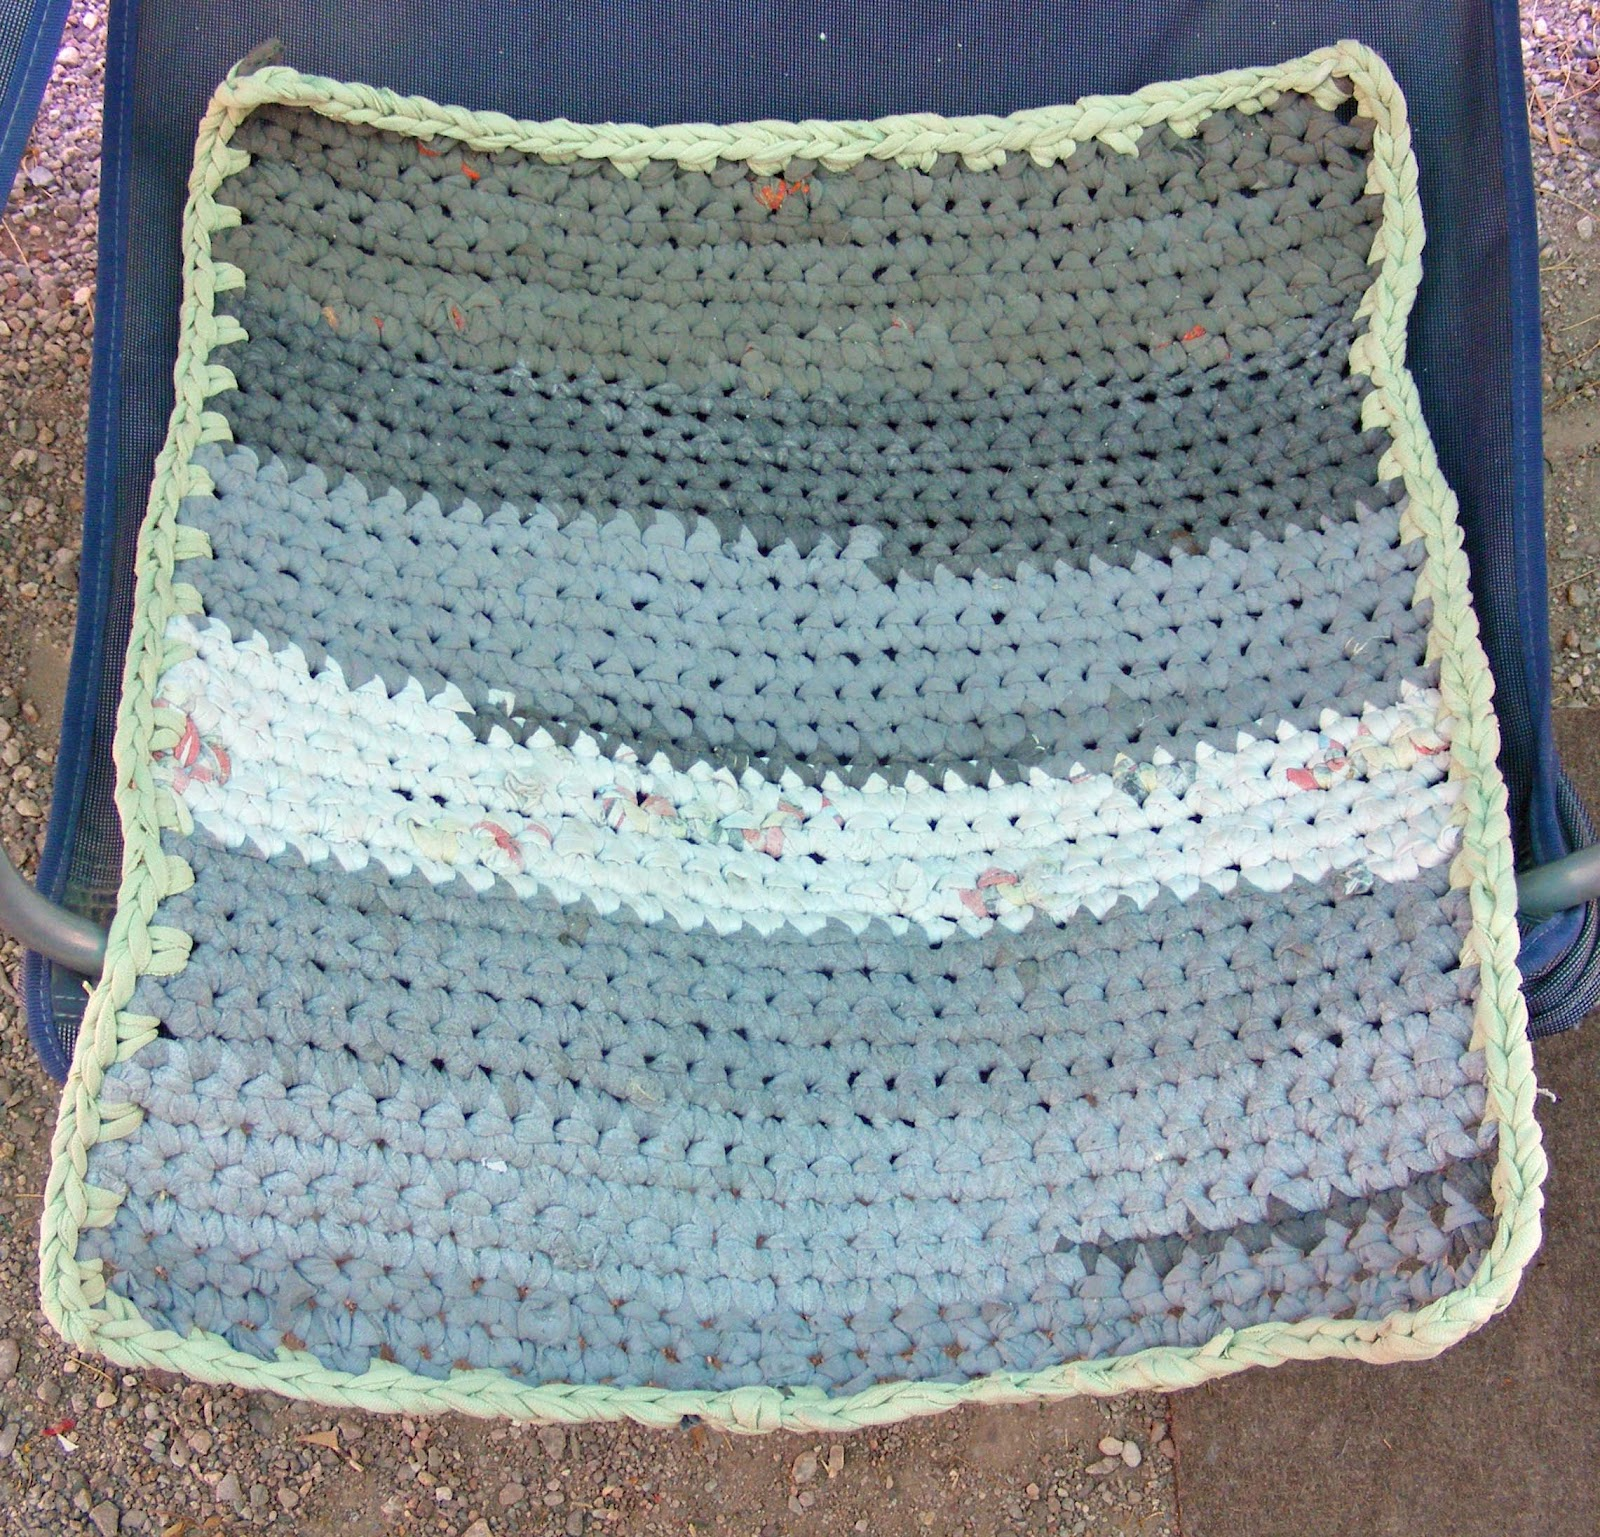 Town's End Craft Corner: Crocheted Recycled Tee Shirt Rug